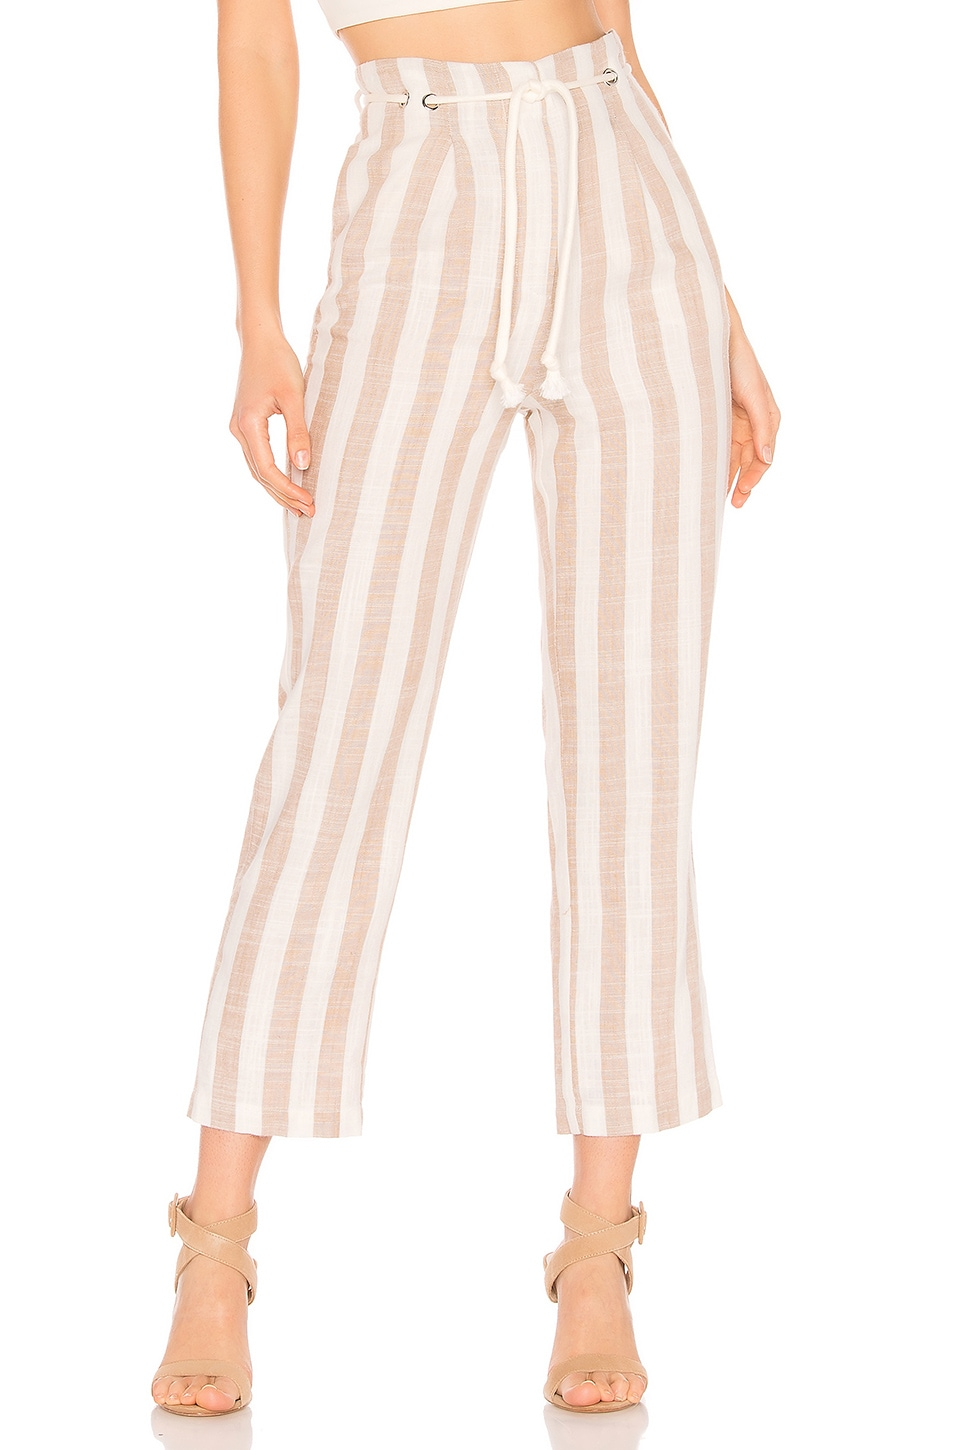 Tularosa Nicki Pants in White & Beige Stripe